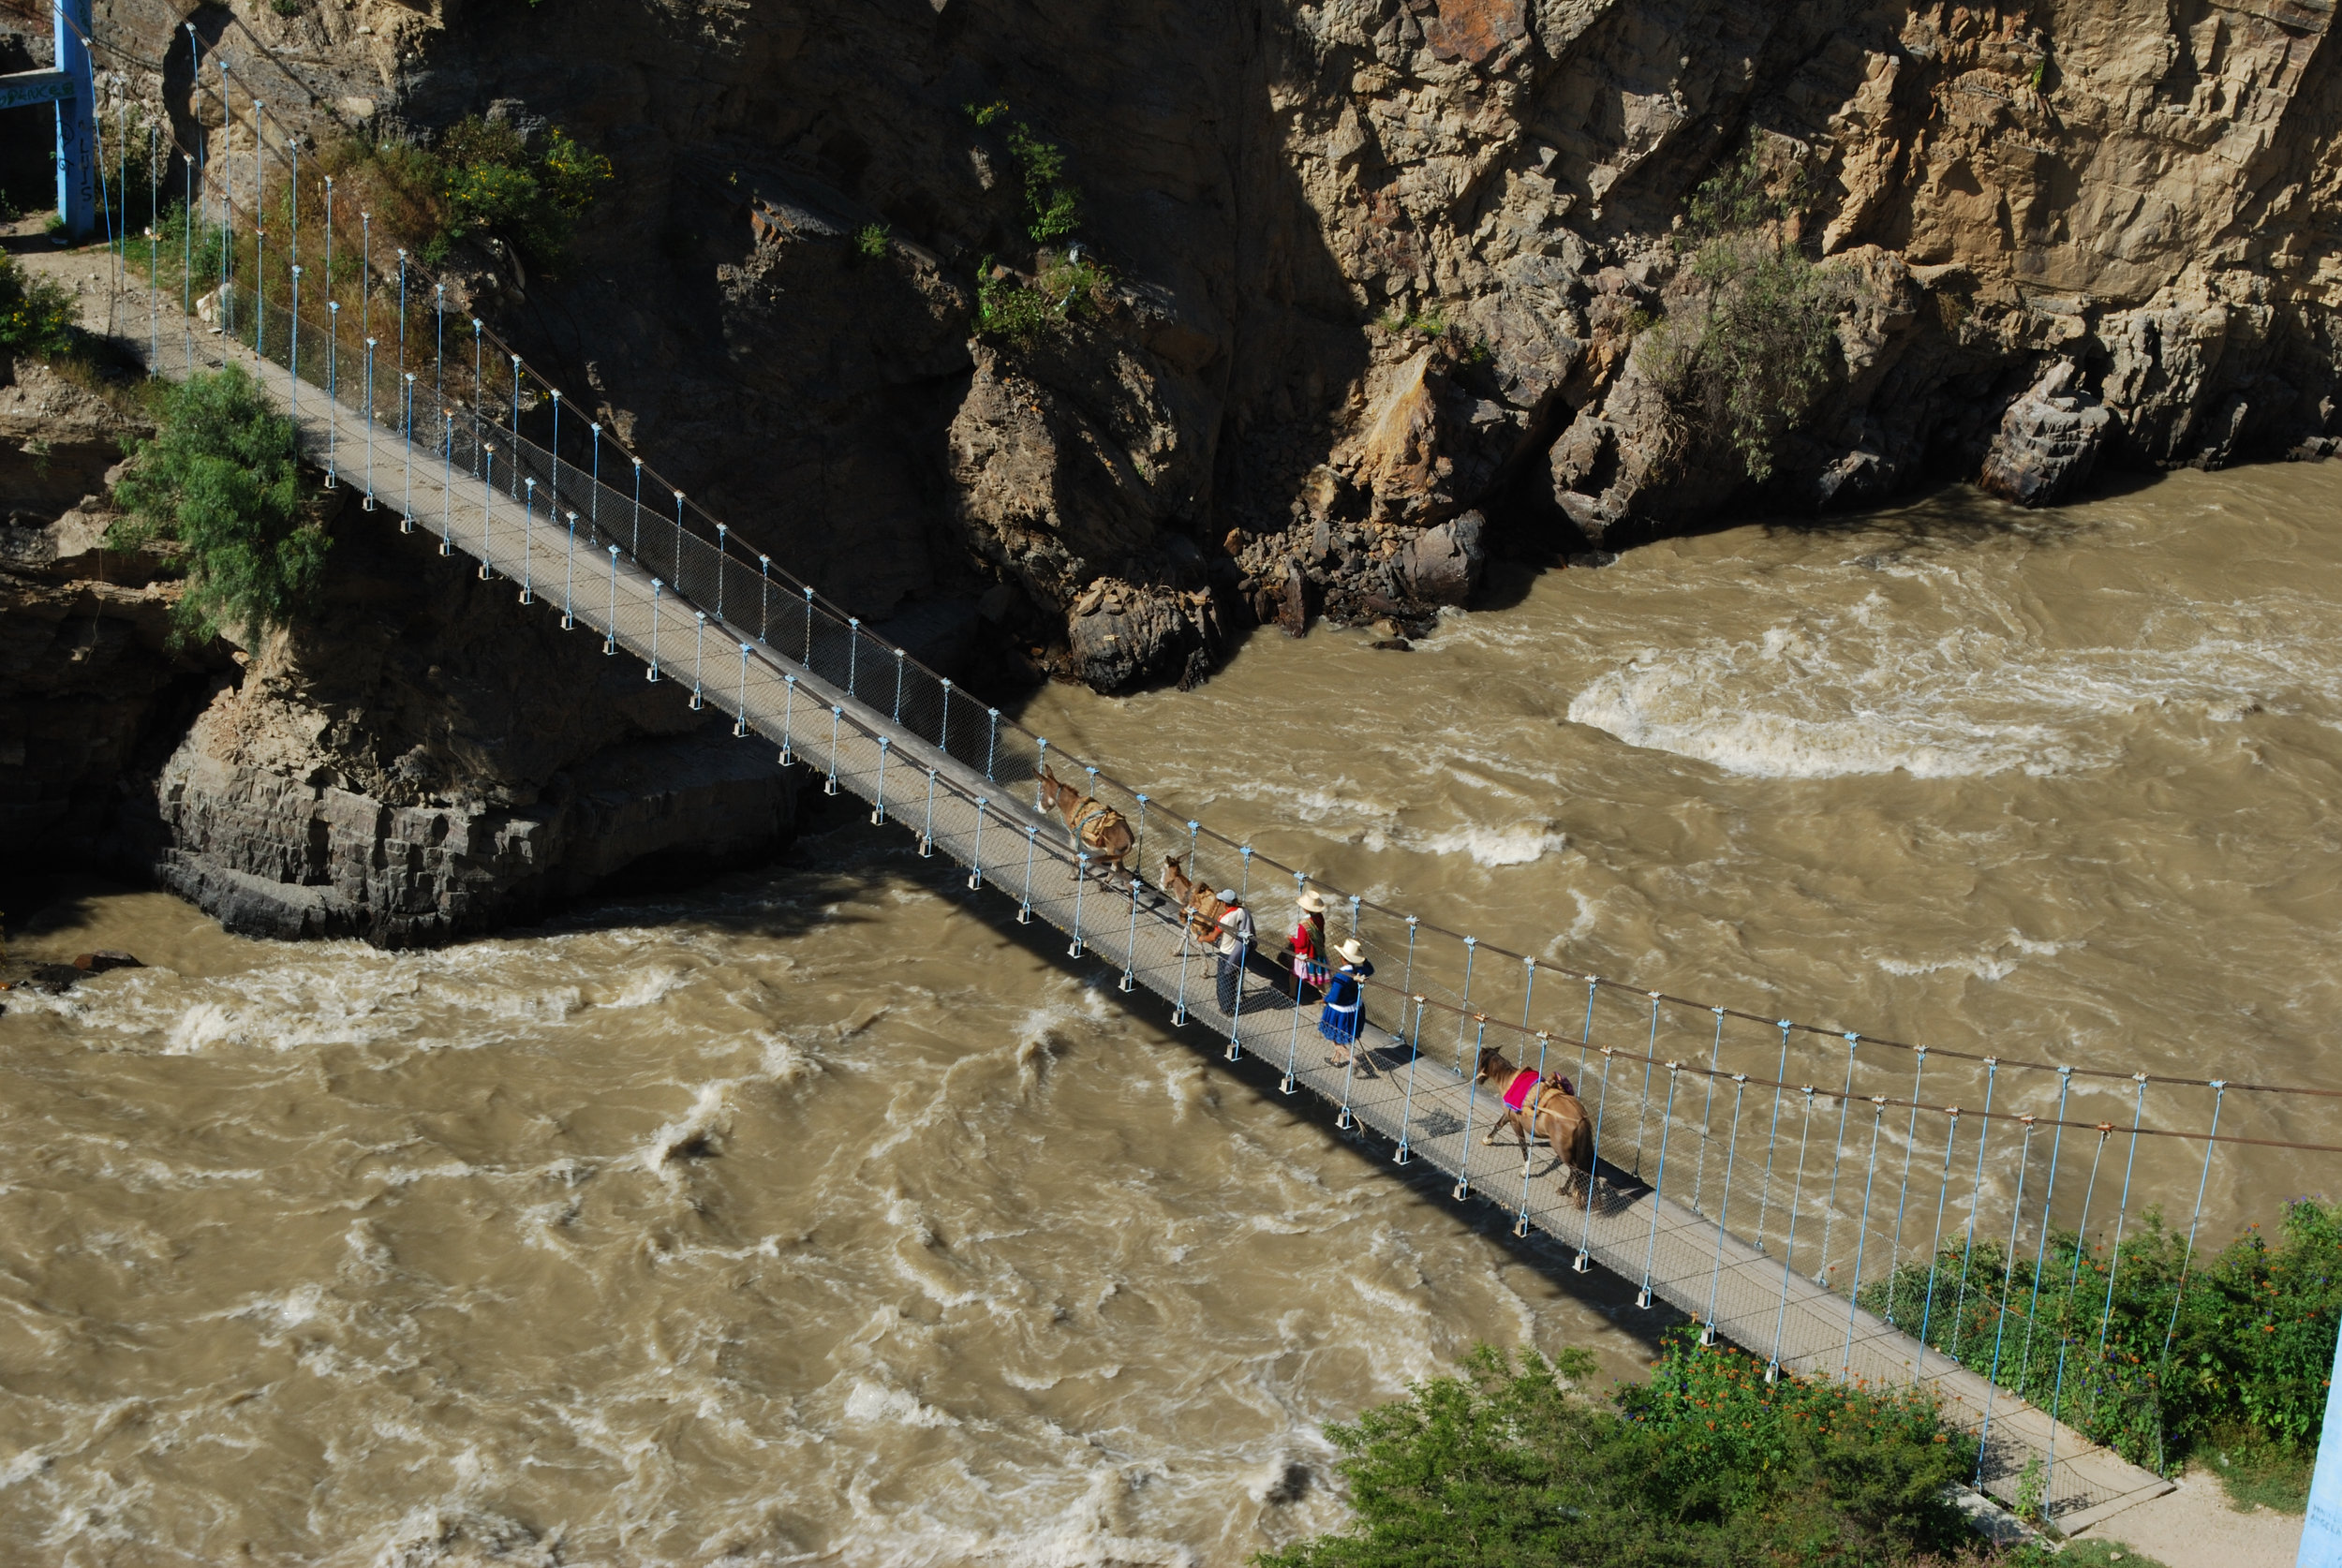 Suspension bridge across the fast-flowing Santa River being used by local farmers.